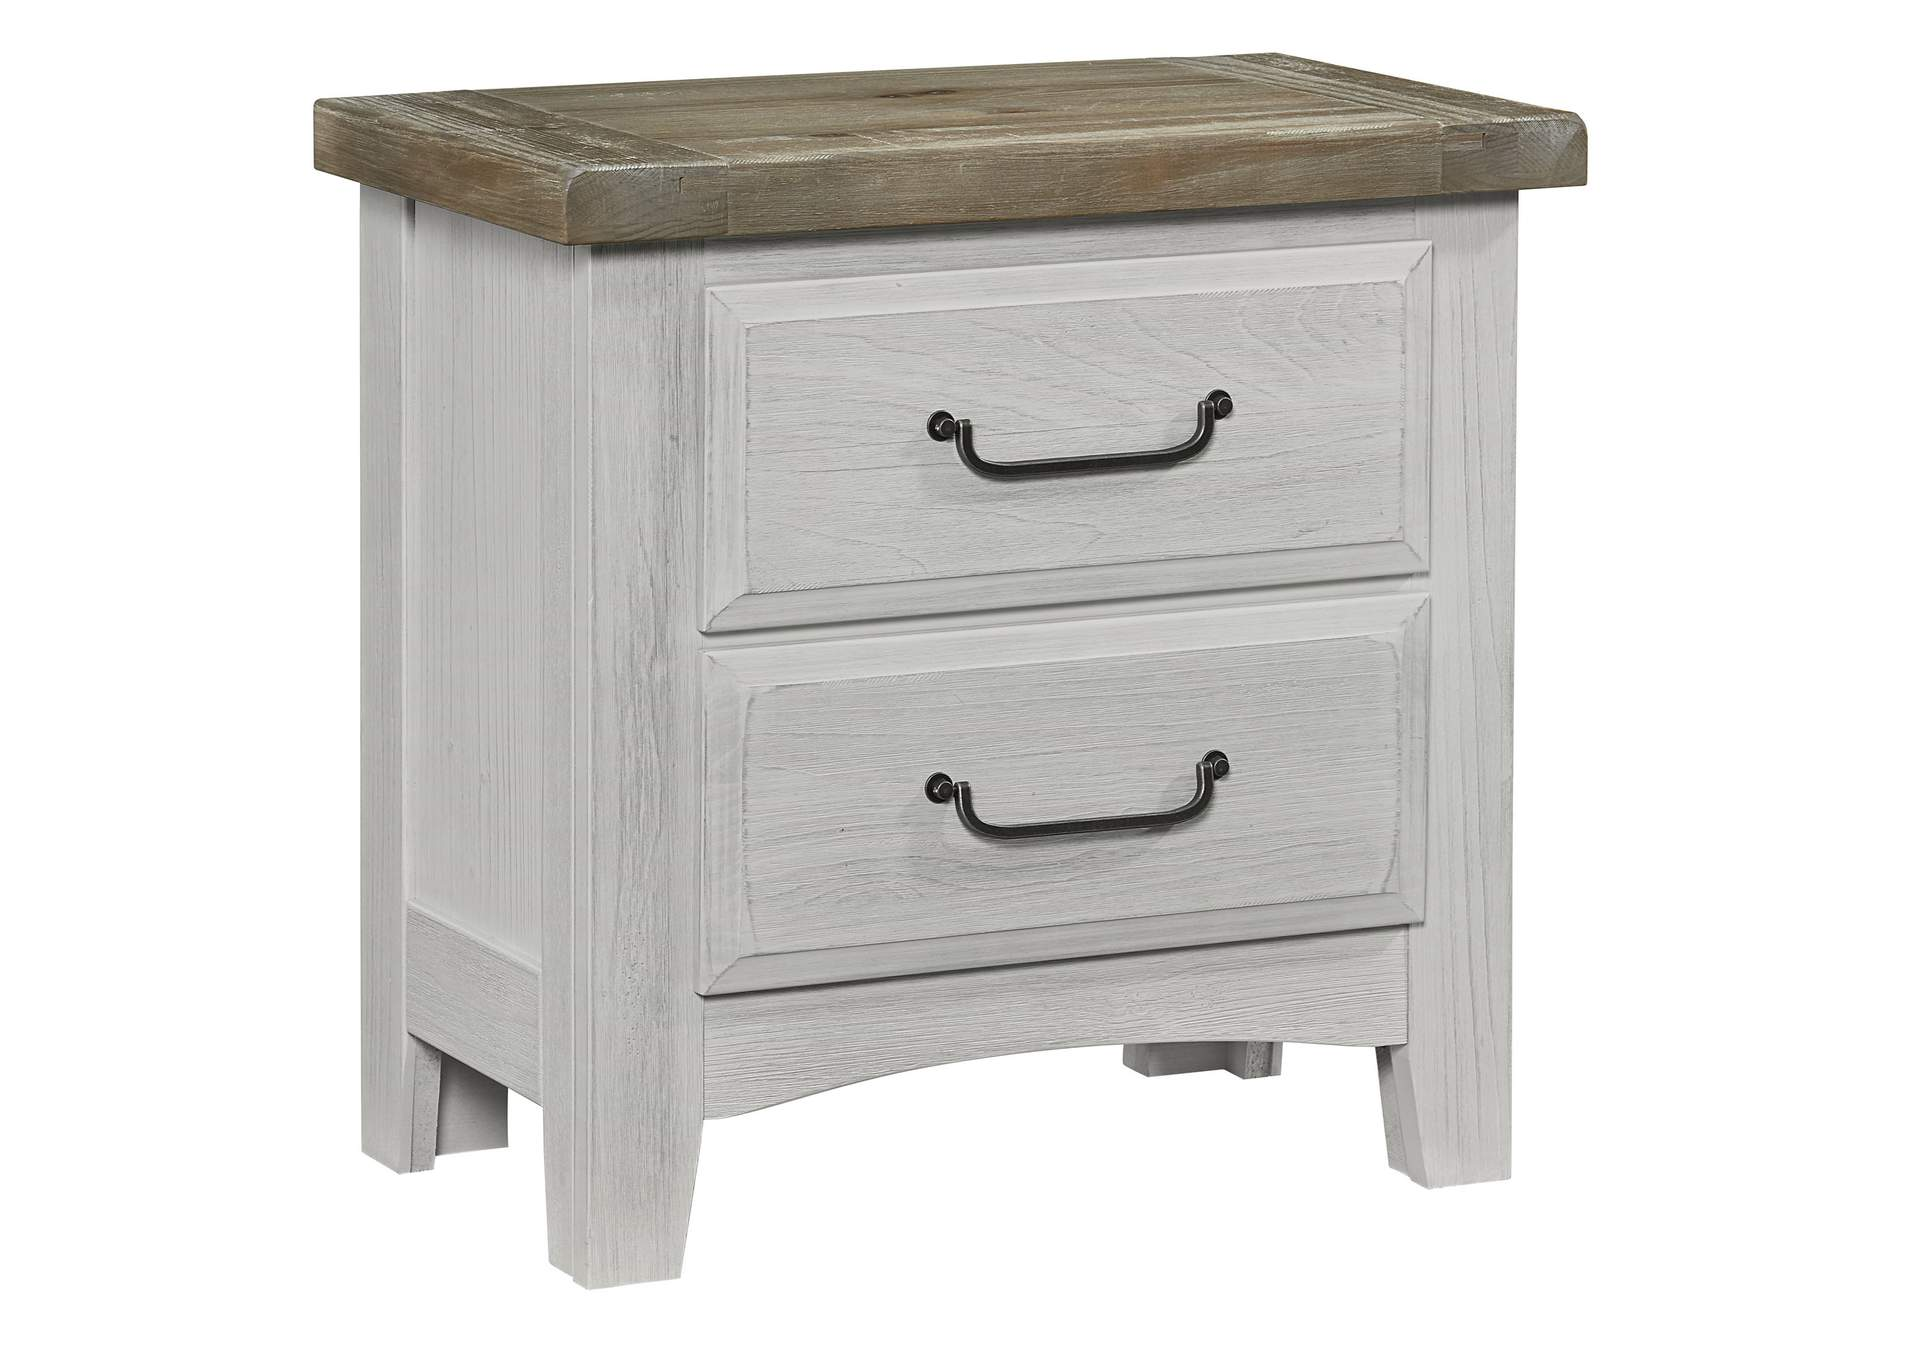 694 - Sawmill Alabaster Two Tone Night Stand - 2 Drawer,Vaughan-Bassett